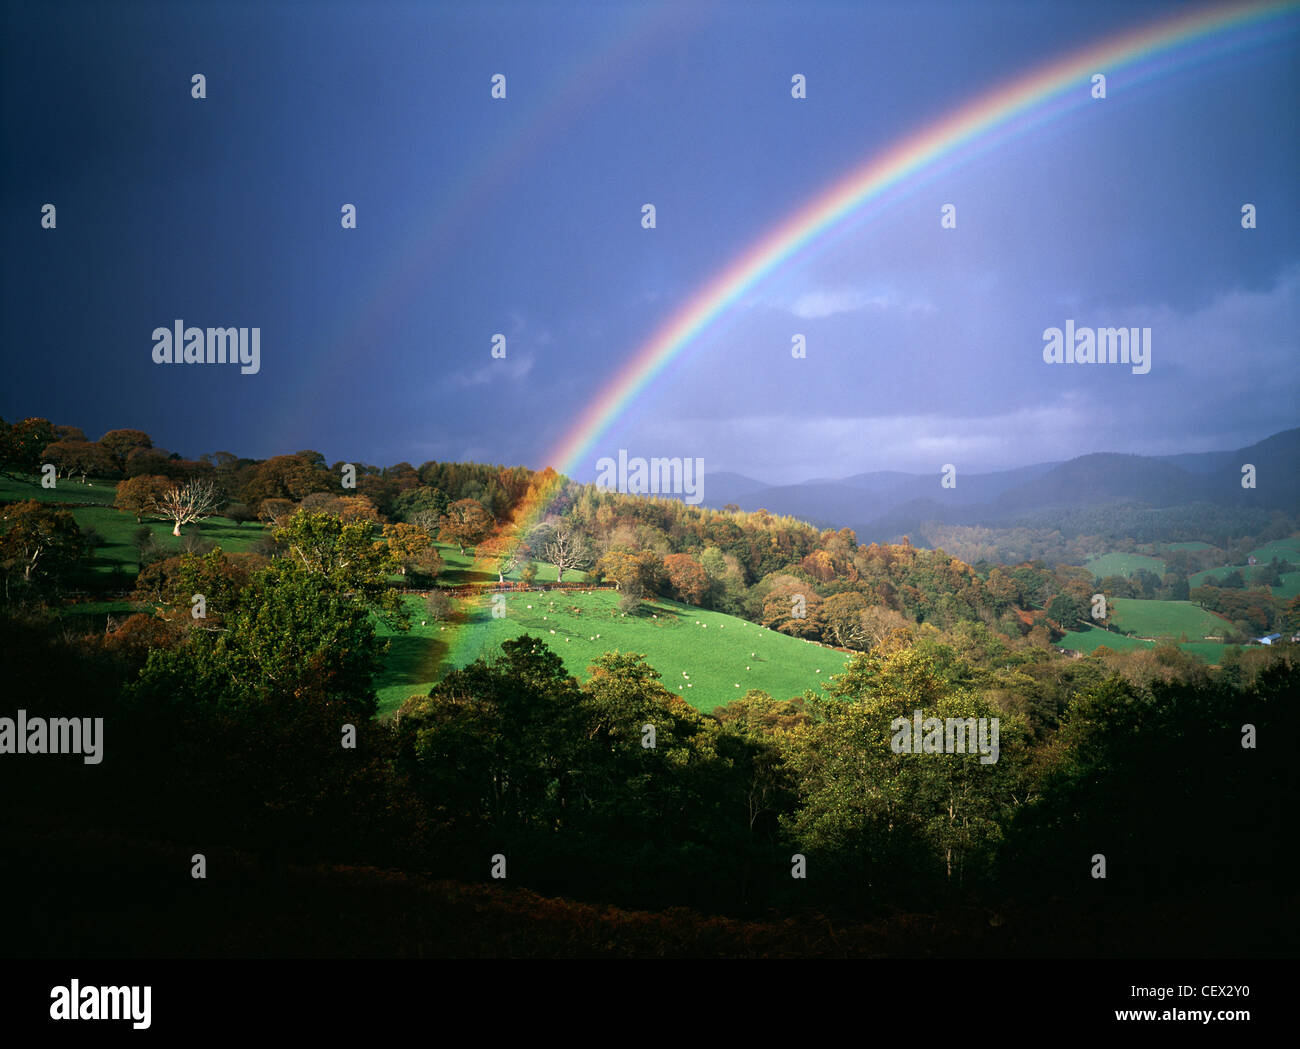 Storm light with rainbow against dark skies over Welsh hills. - Stock Image